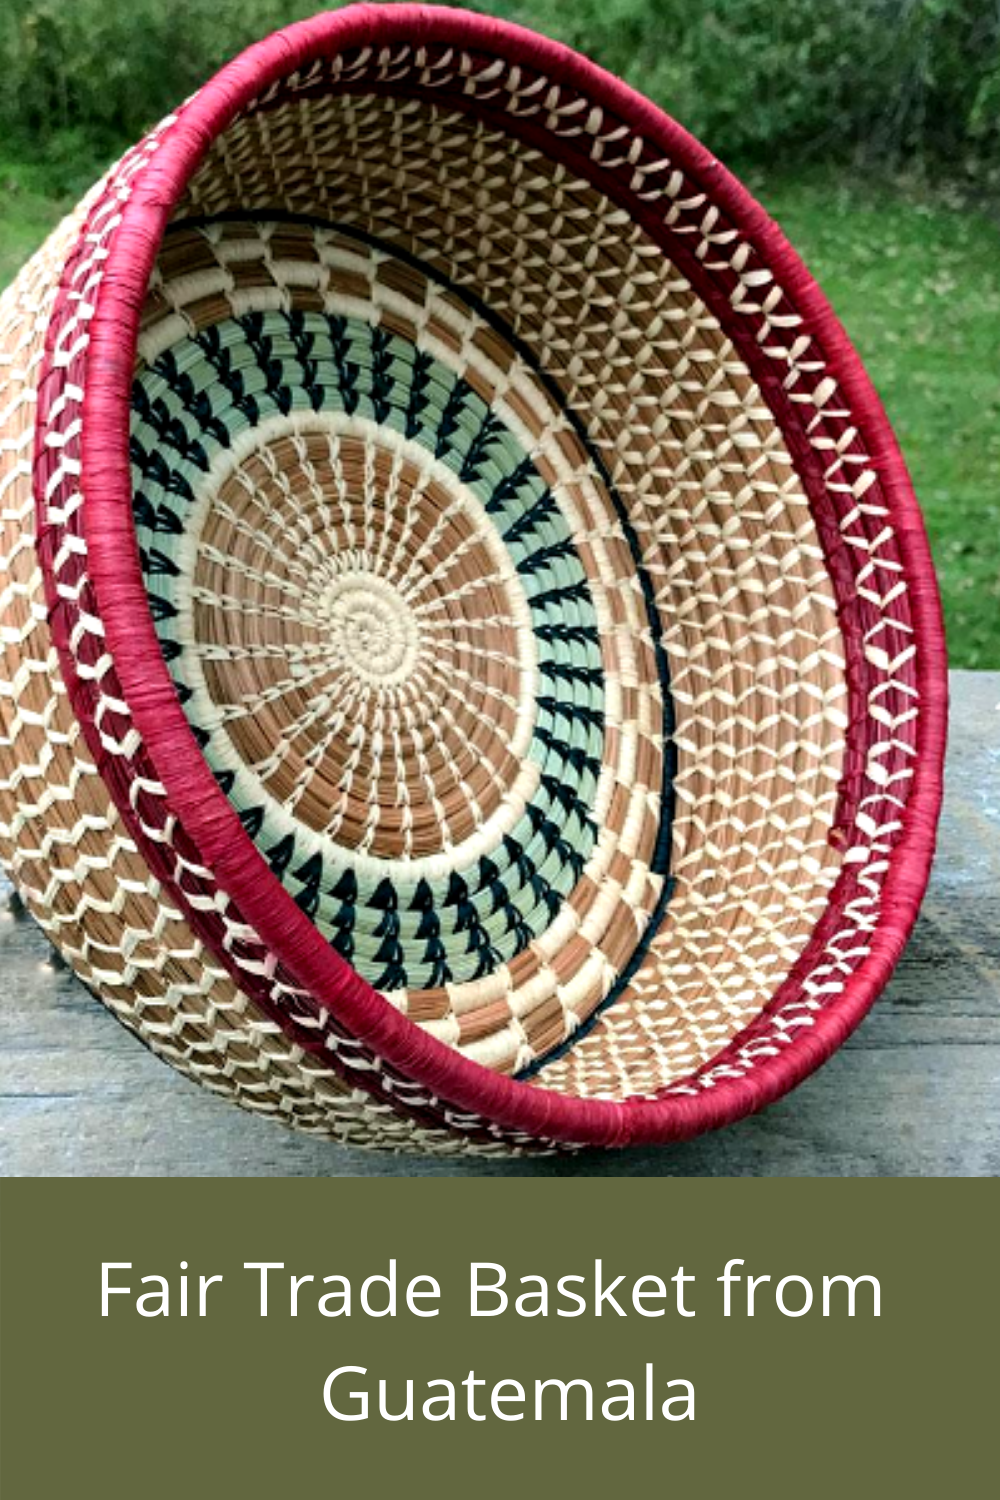 Basket designed and handcrafted by Mayan women in